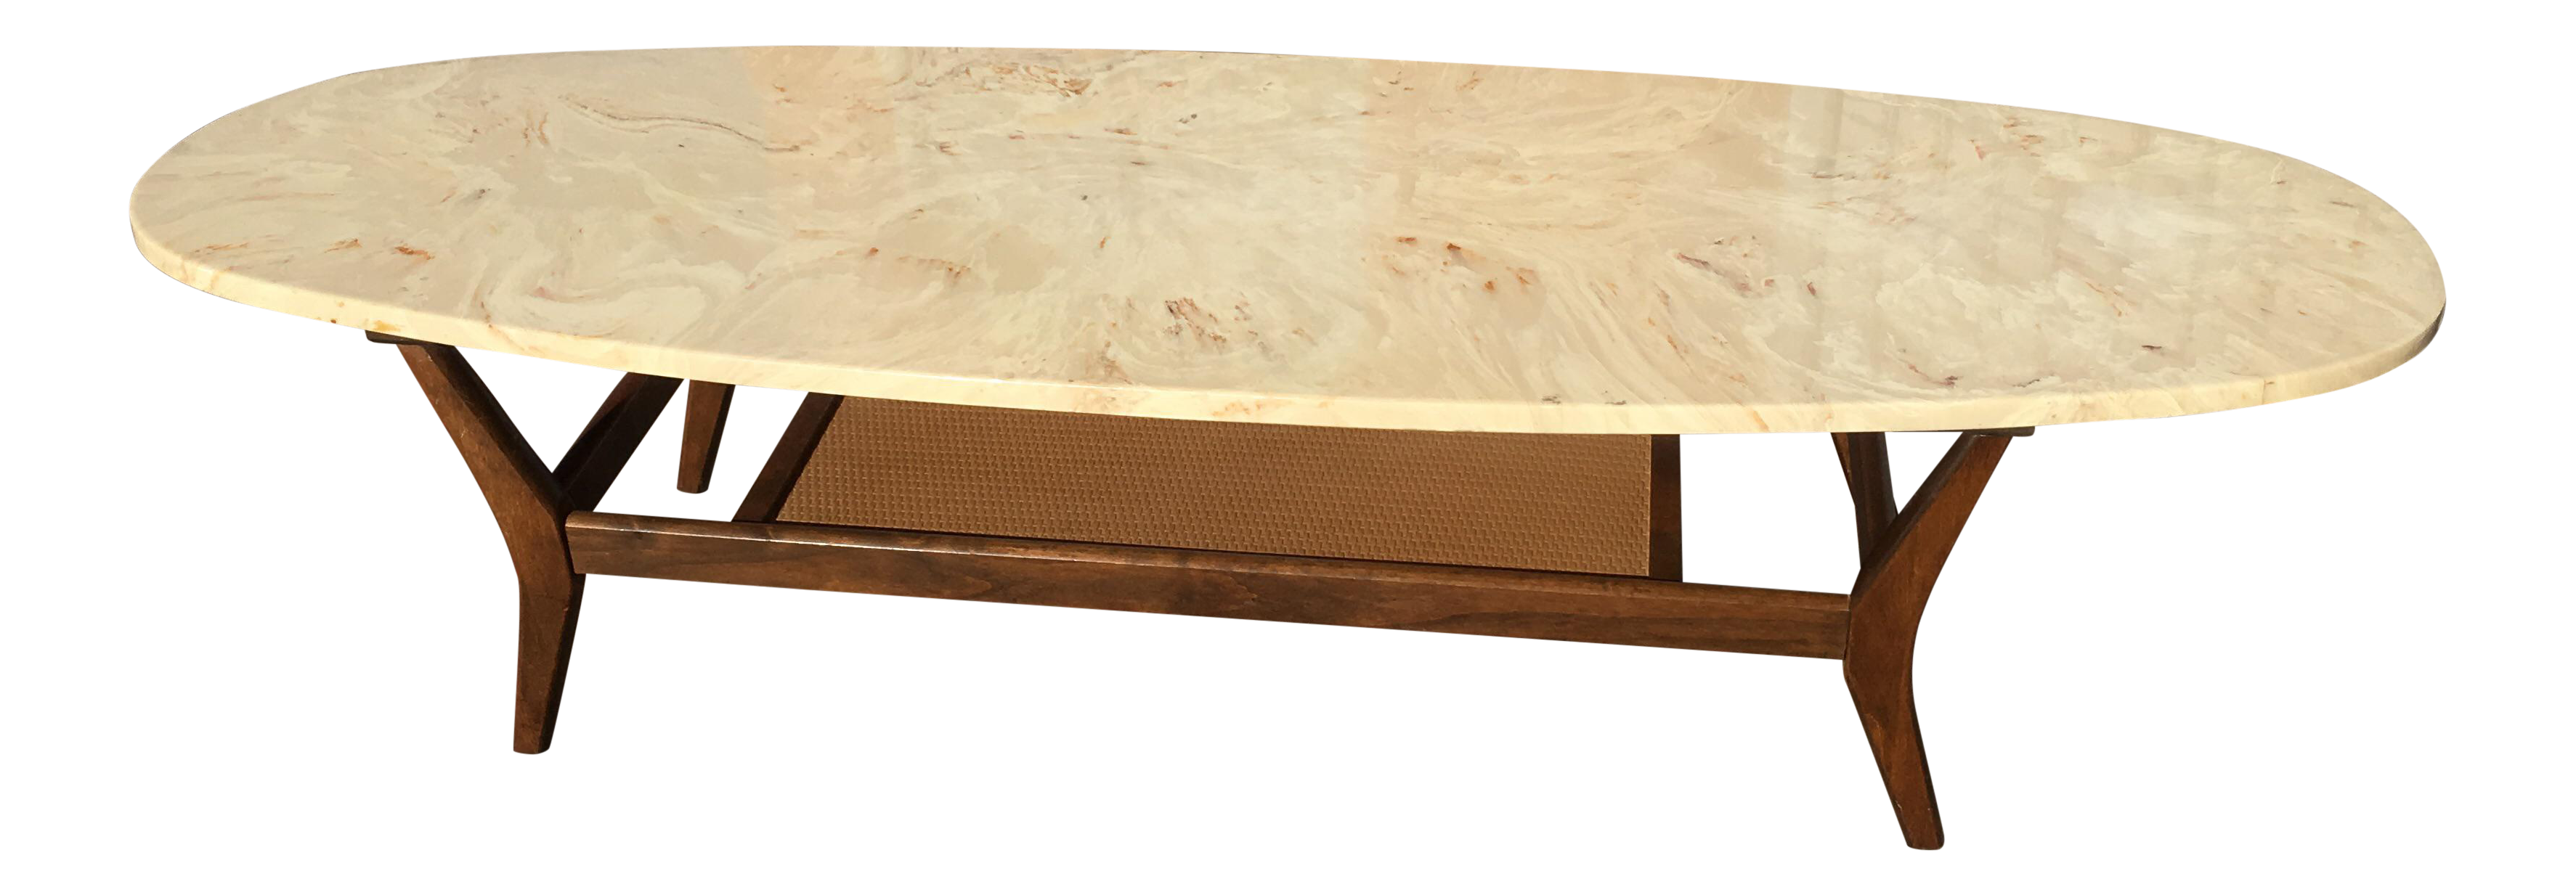 Delightful Mid Century Modern Marble Surfboard Coffee Table